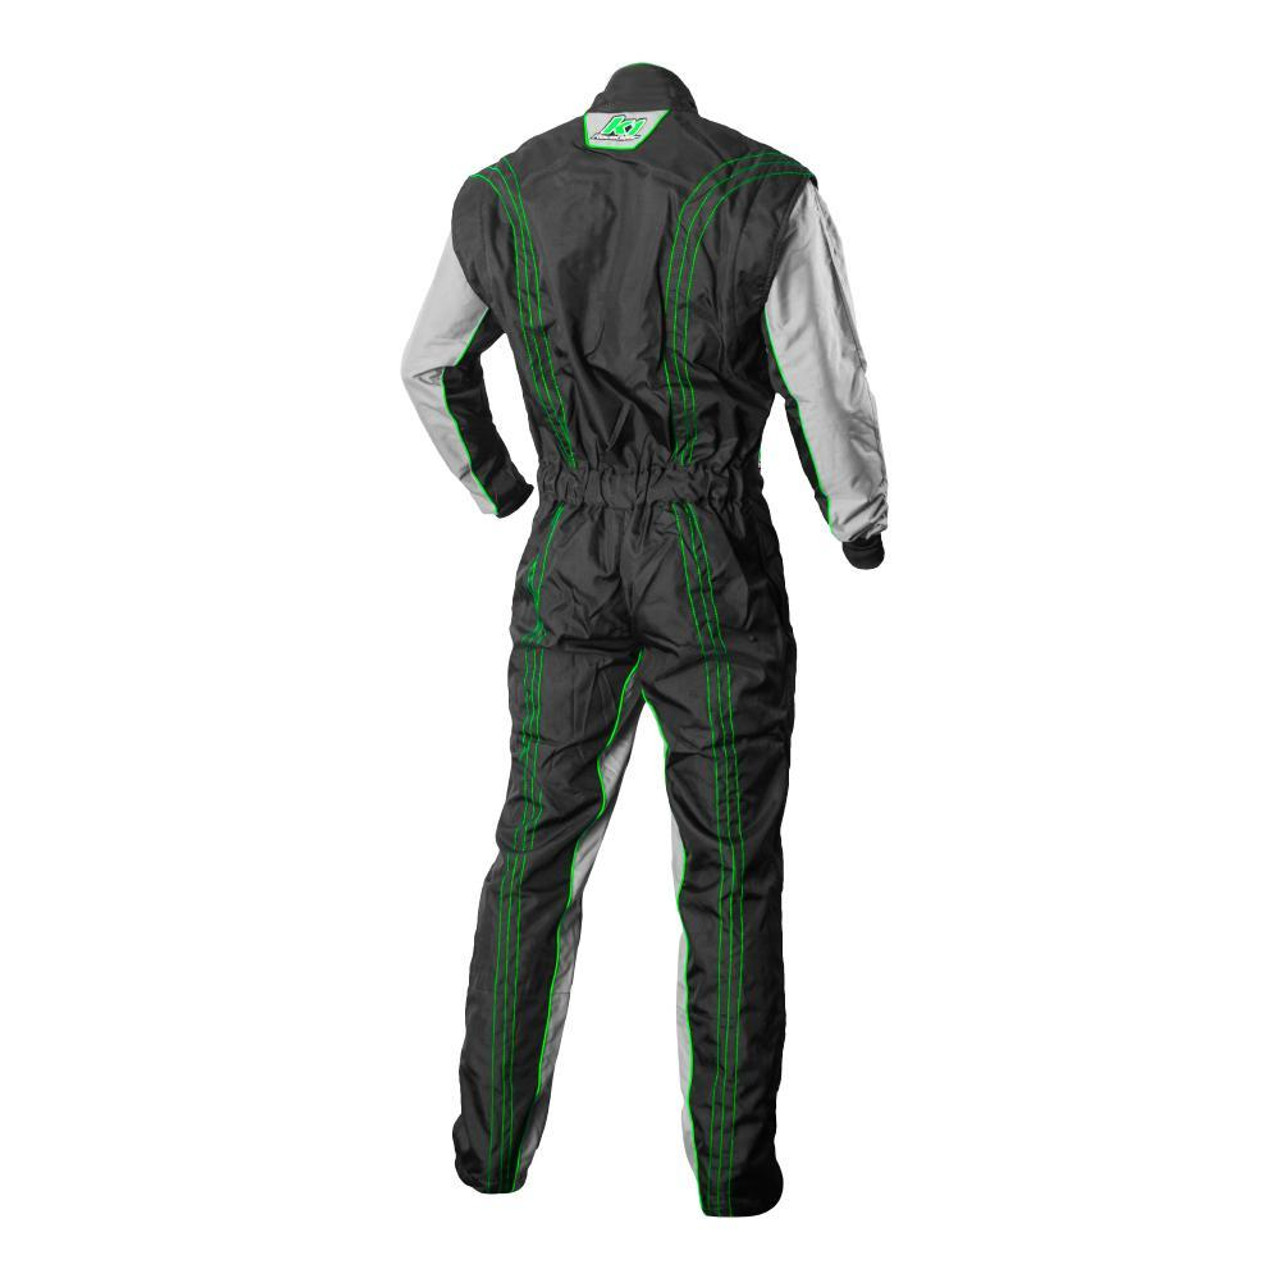 K1R GK2 Green Race Suit Back